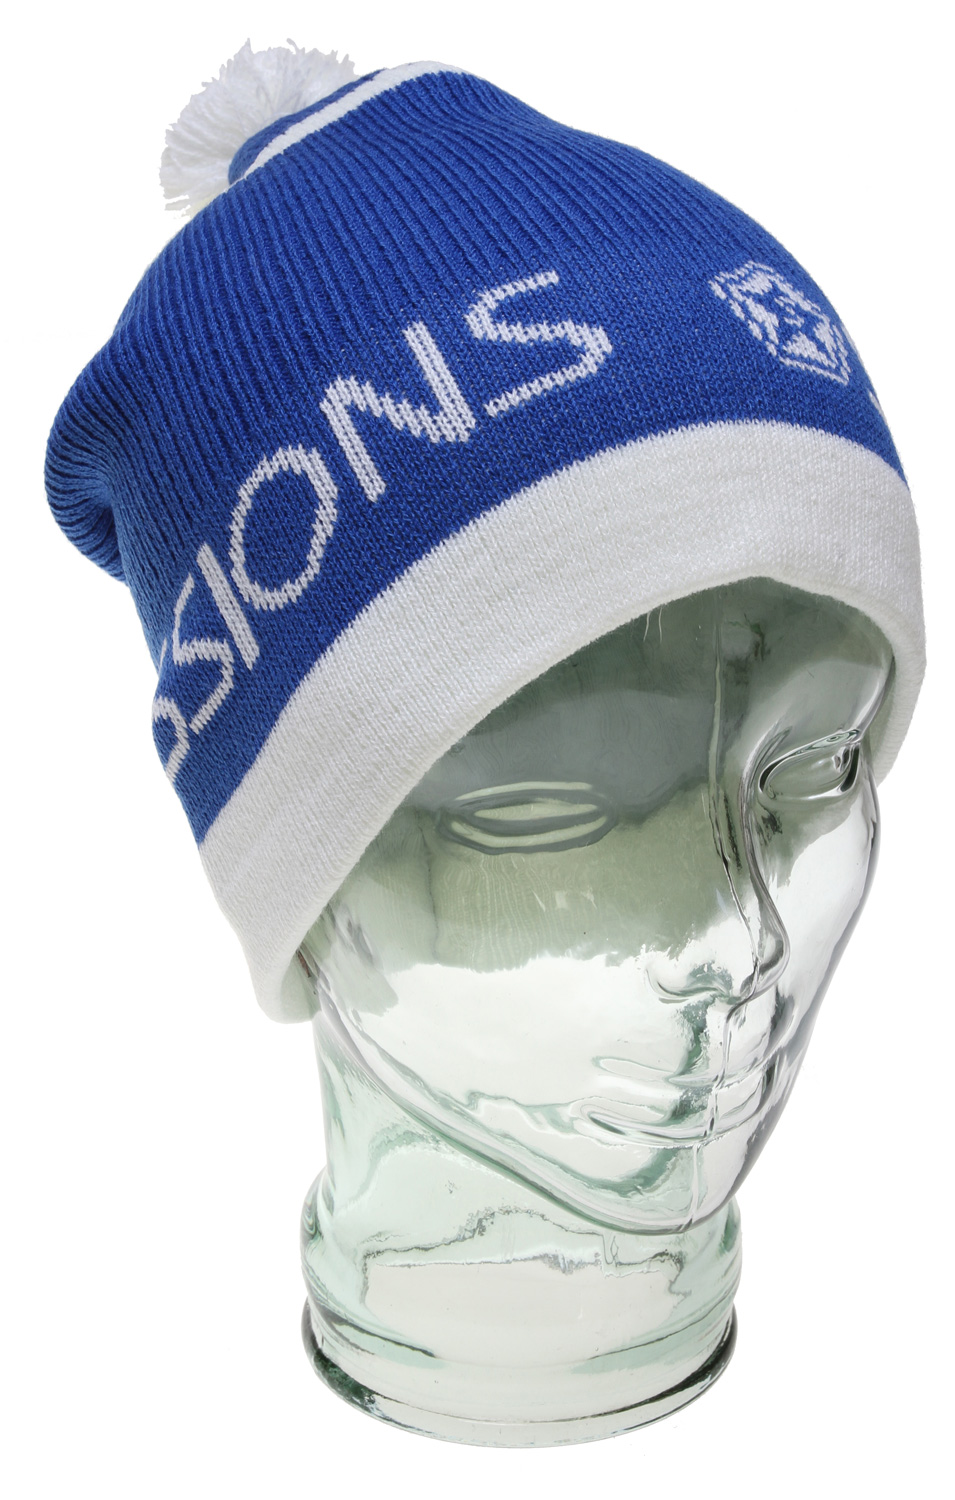 If you feel like staying warm without sacrificing your style, be sure to grab the Sessions Double Agent Beanie for men. This fashionable and functional beanie is constructed of 100% acrylic material, standing up to any abuse thrown its way. Perfect for staying warm at the resort, in the backcountry, or even while sipping martinis. Of course - shaken, not stirred.  One Size   Two-tone Beanie   Thick Pom   Acrylic - $8.95